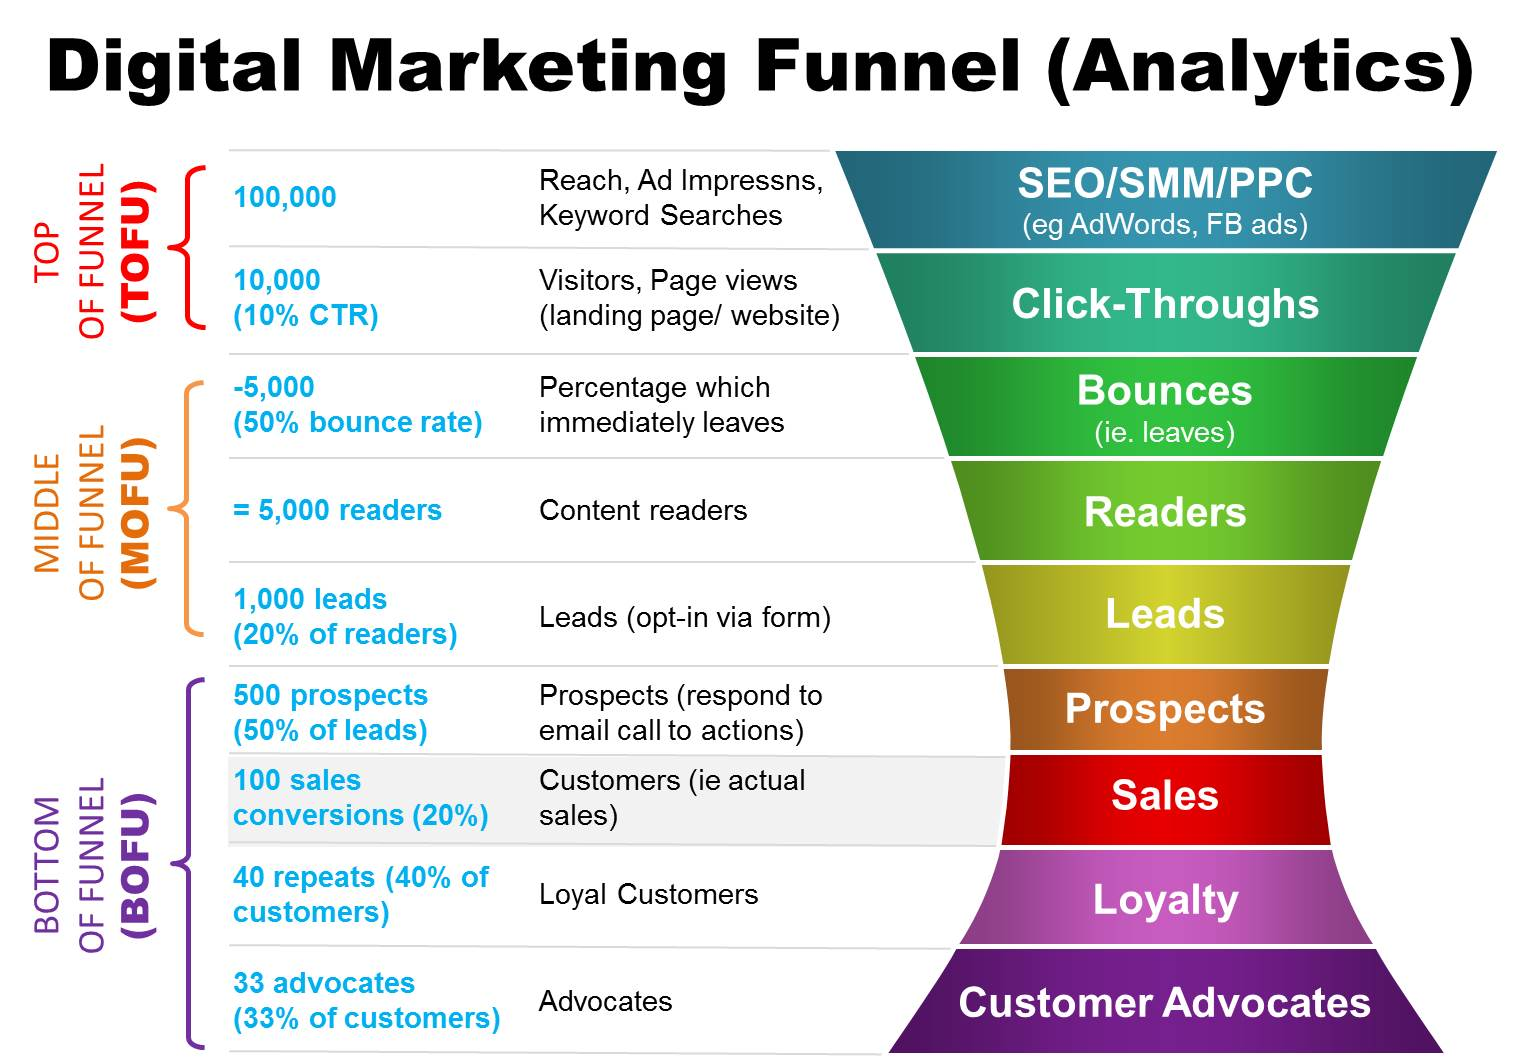 Digital-Marketing-Funnel-Analytics-.jpg